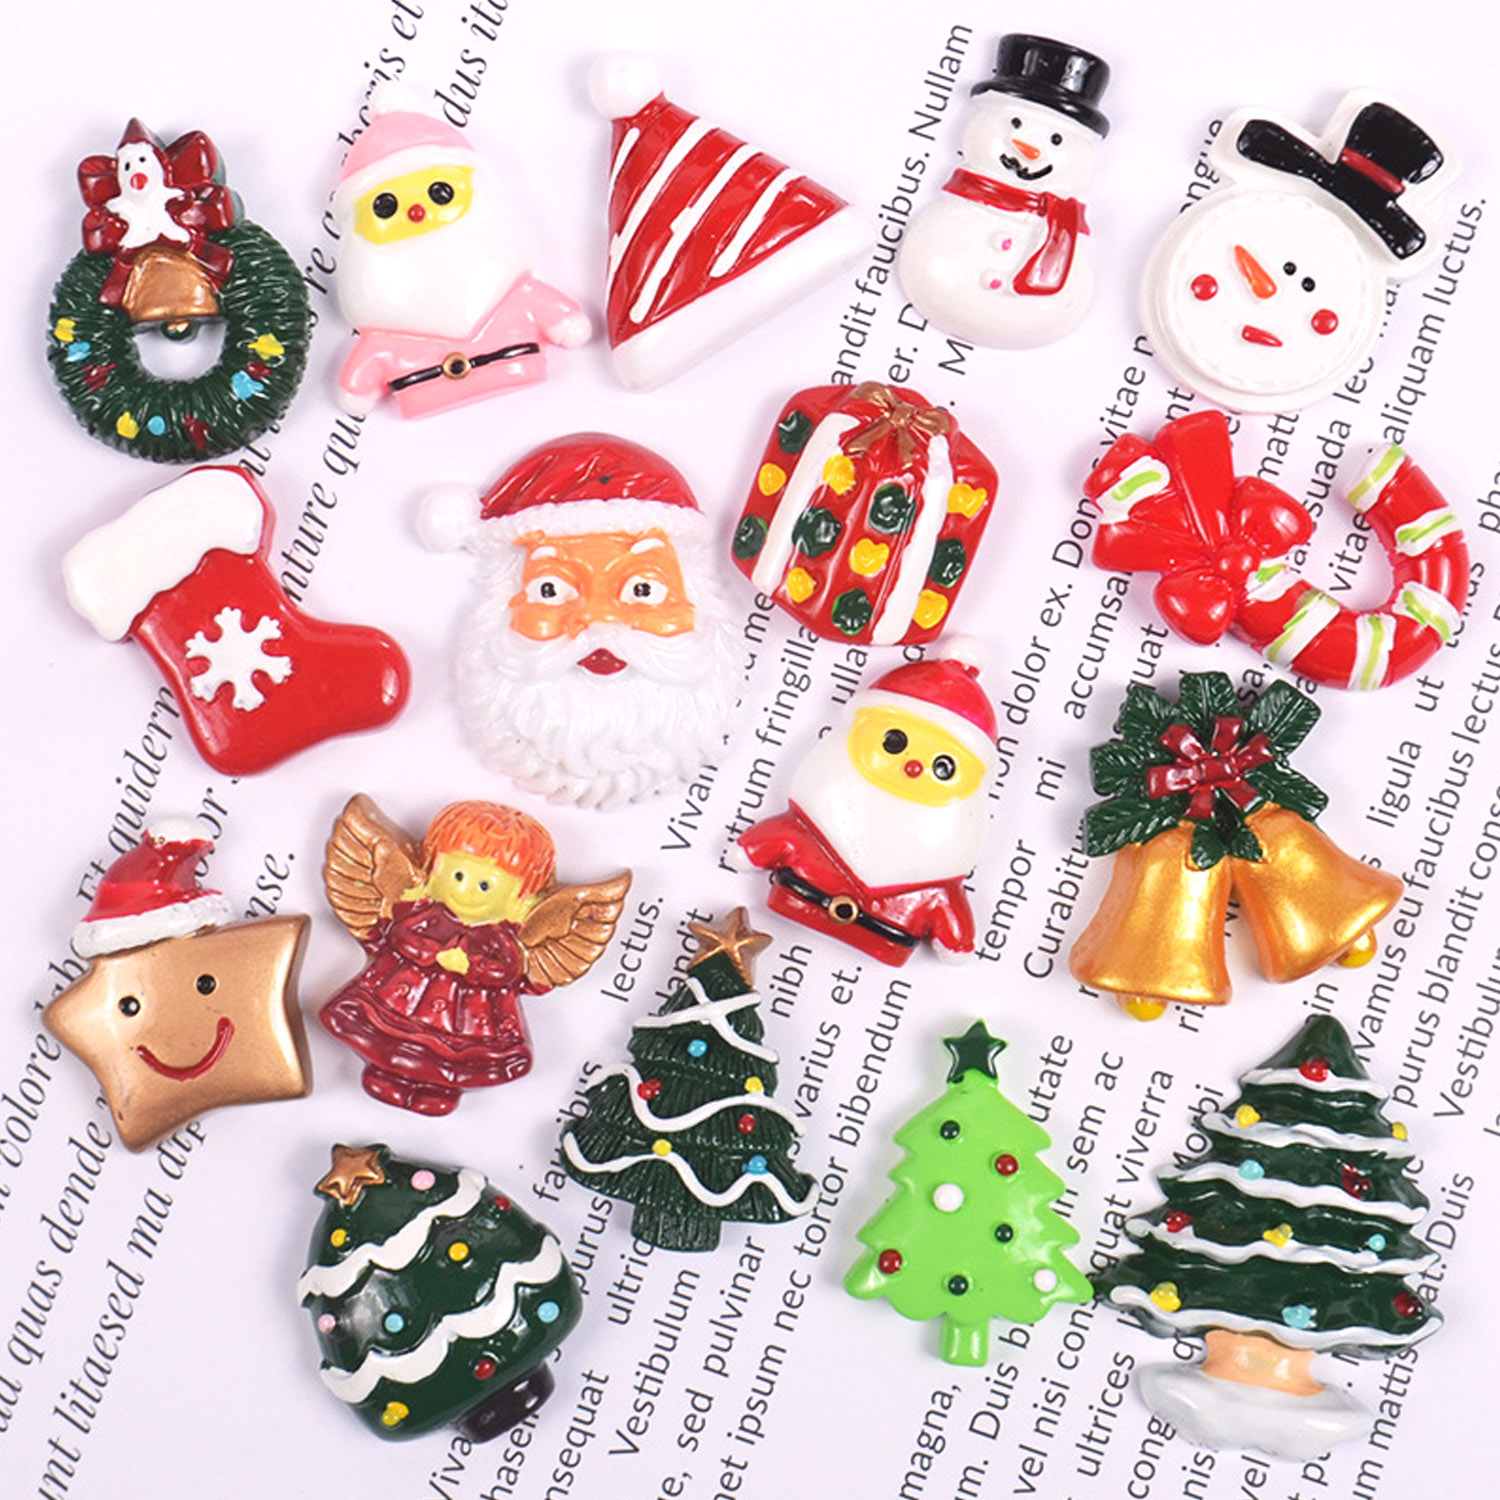 10pcs Mini Cute Christmas Series Resin Flatback Charm Accessories For DIY Mobile Phone Case Earring Hairpin Crafts Random Styles